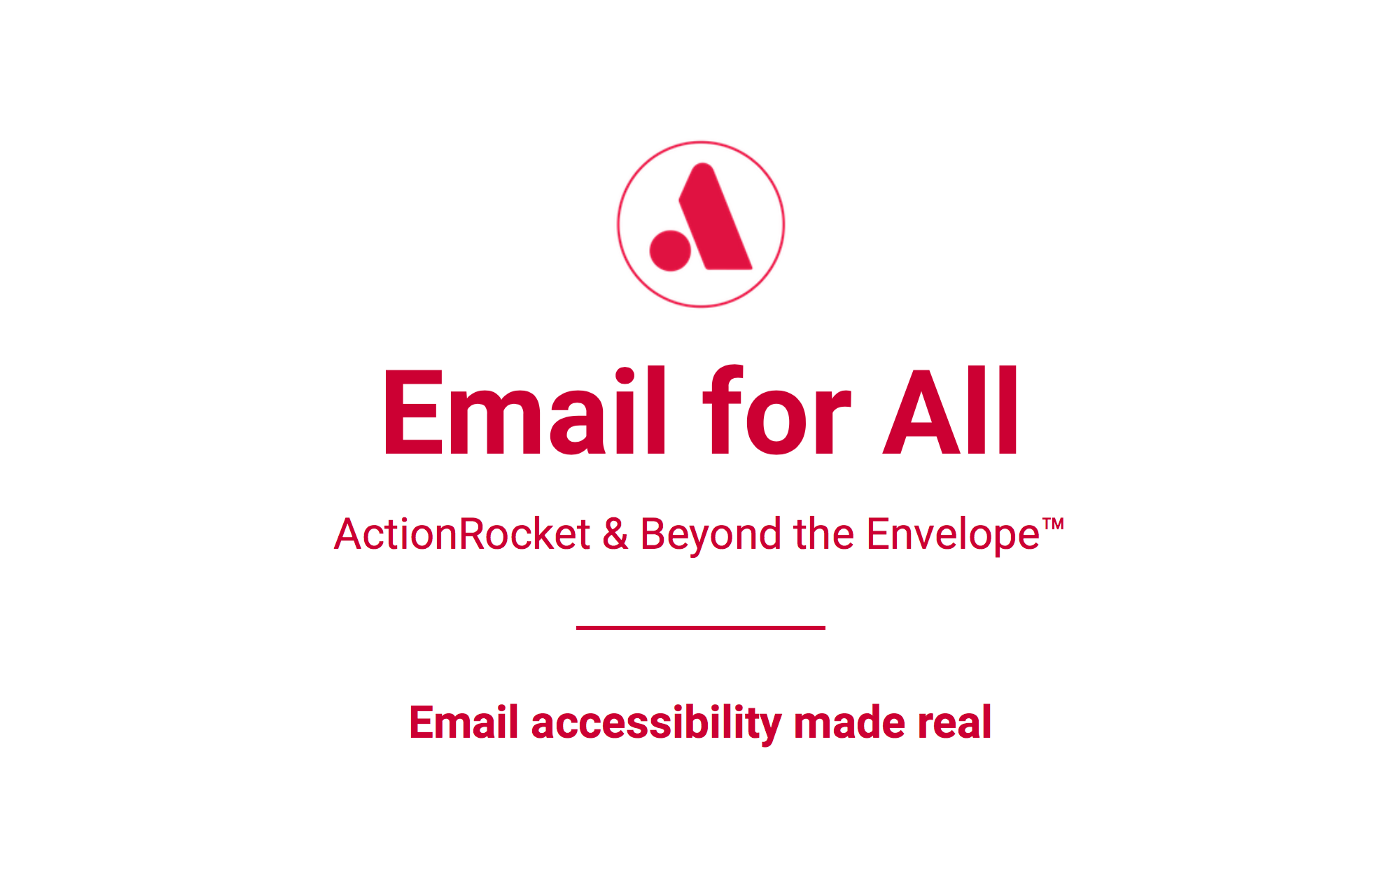 Email for All. Action Rocket and Beyond the Envelope. Email accessibility made real.